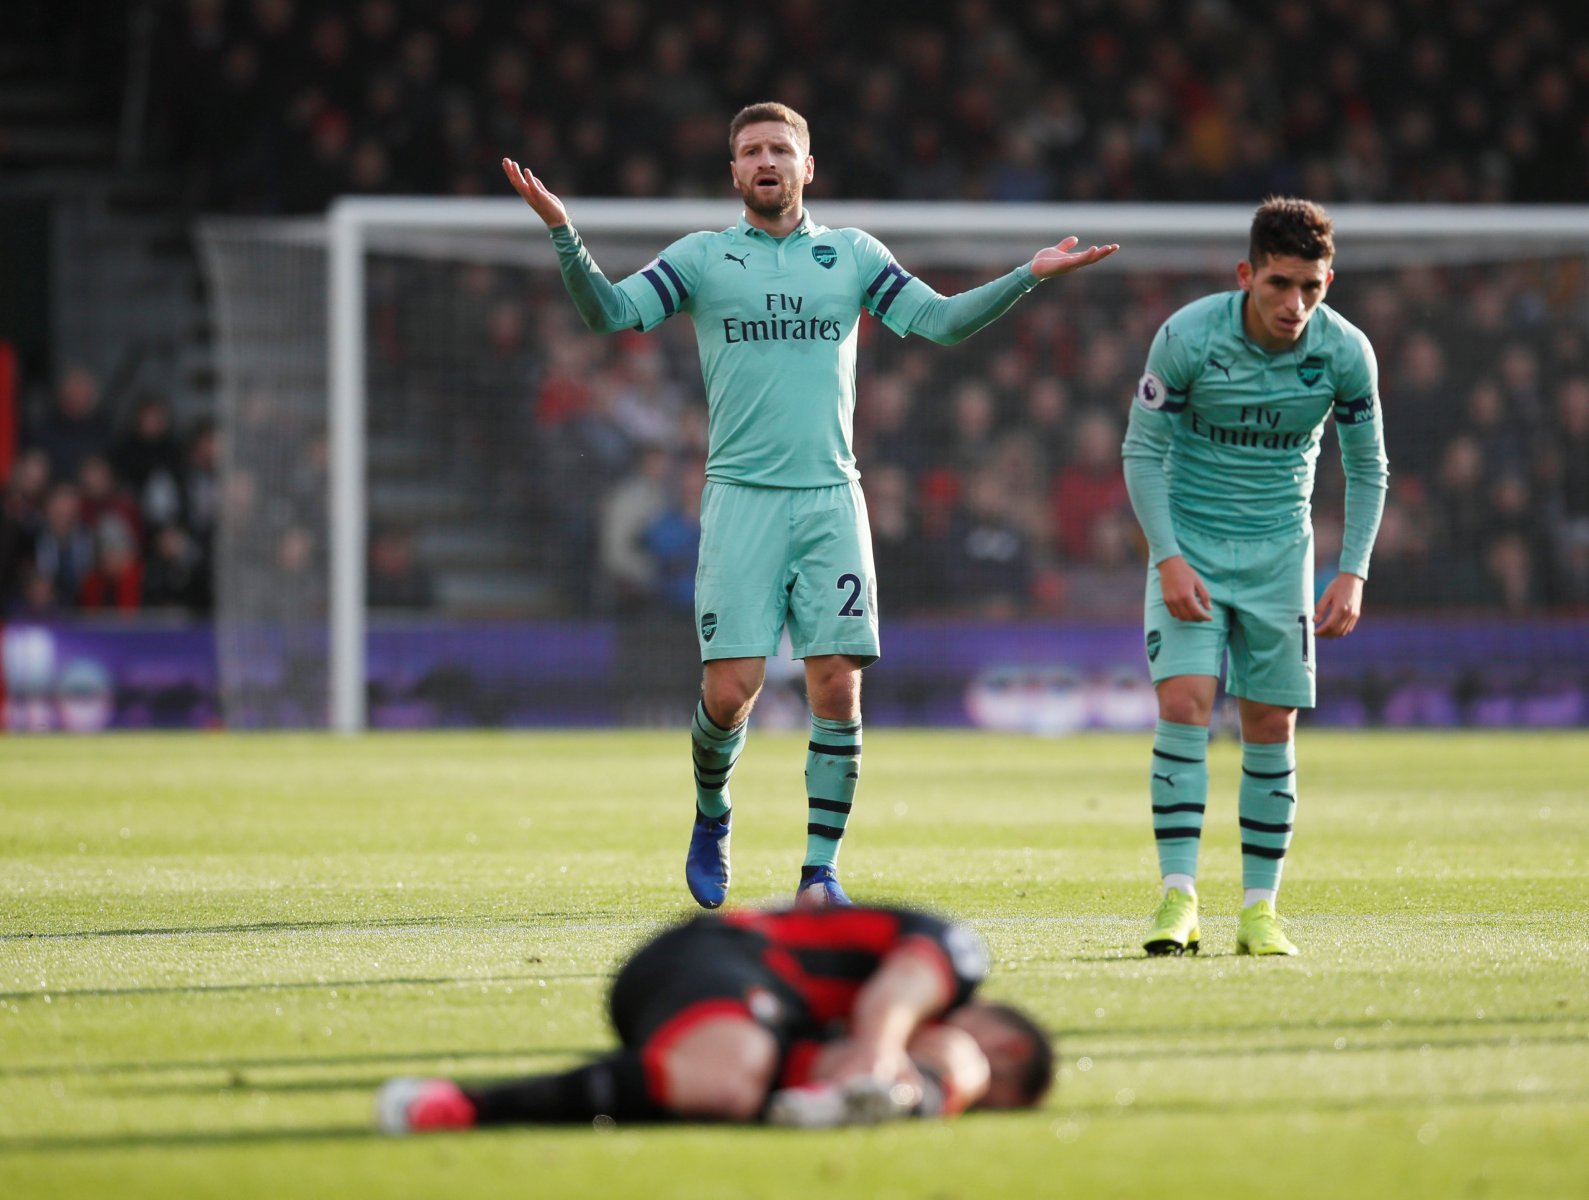 Arsenal: Emery has to listen to Charlie Nicholas and bring in centre-backs